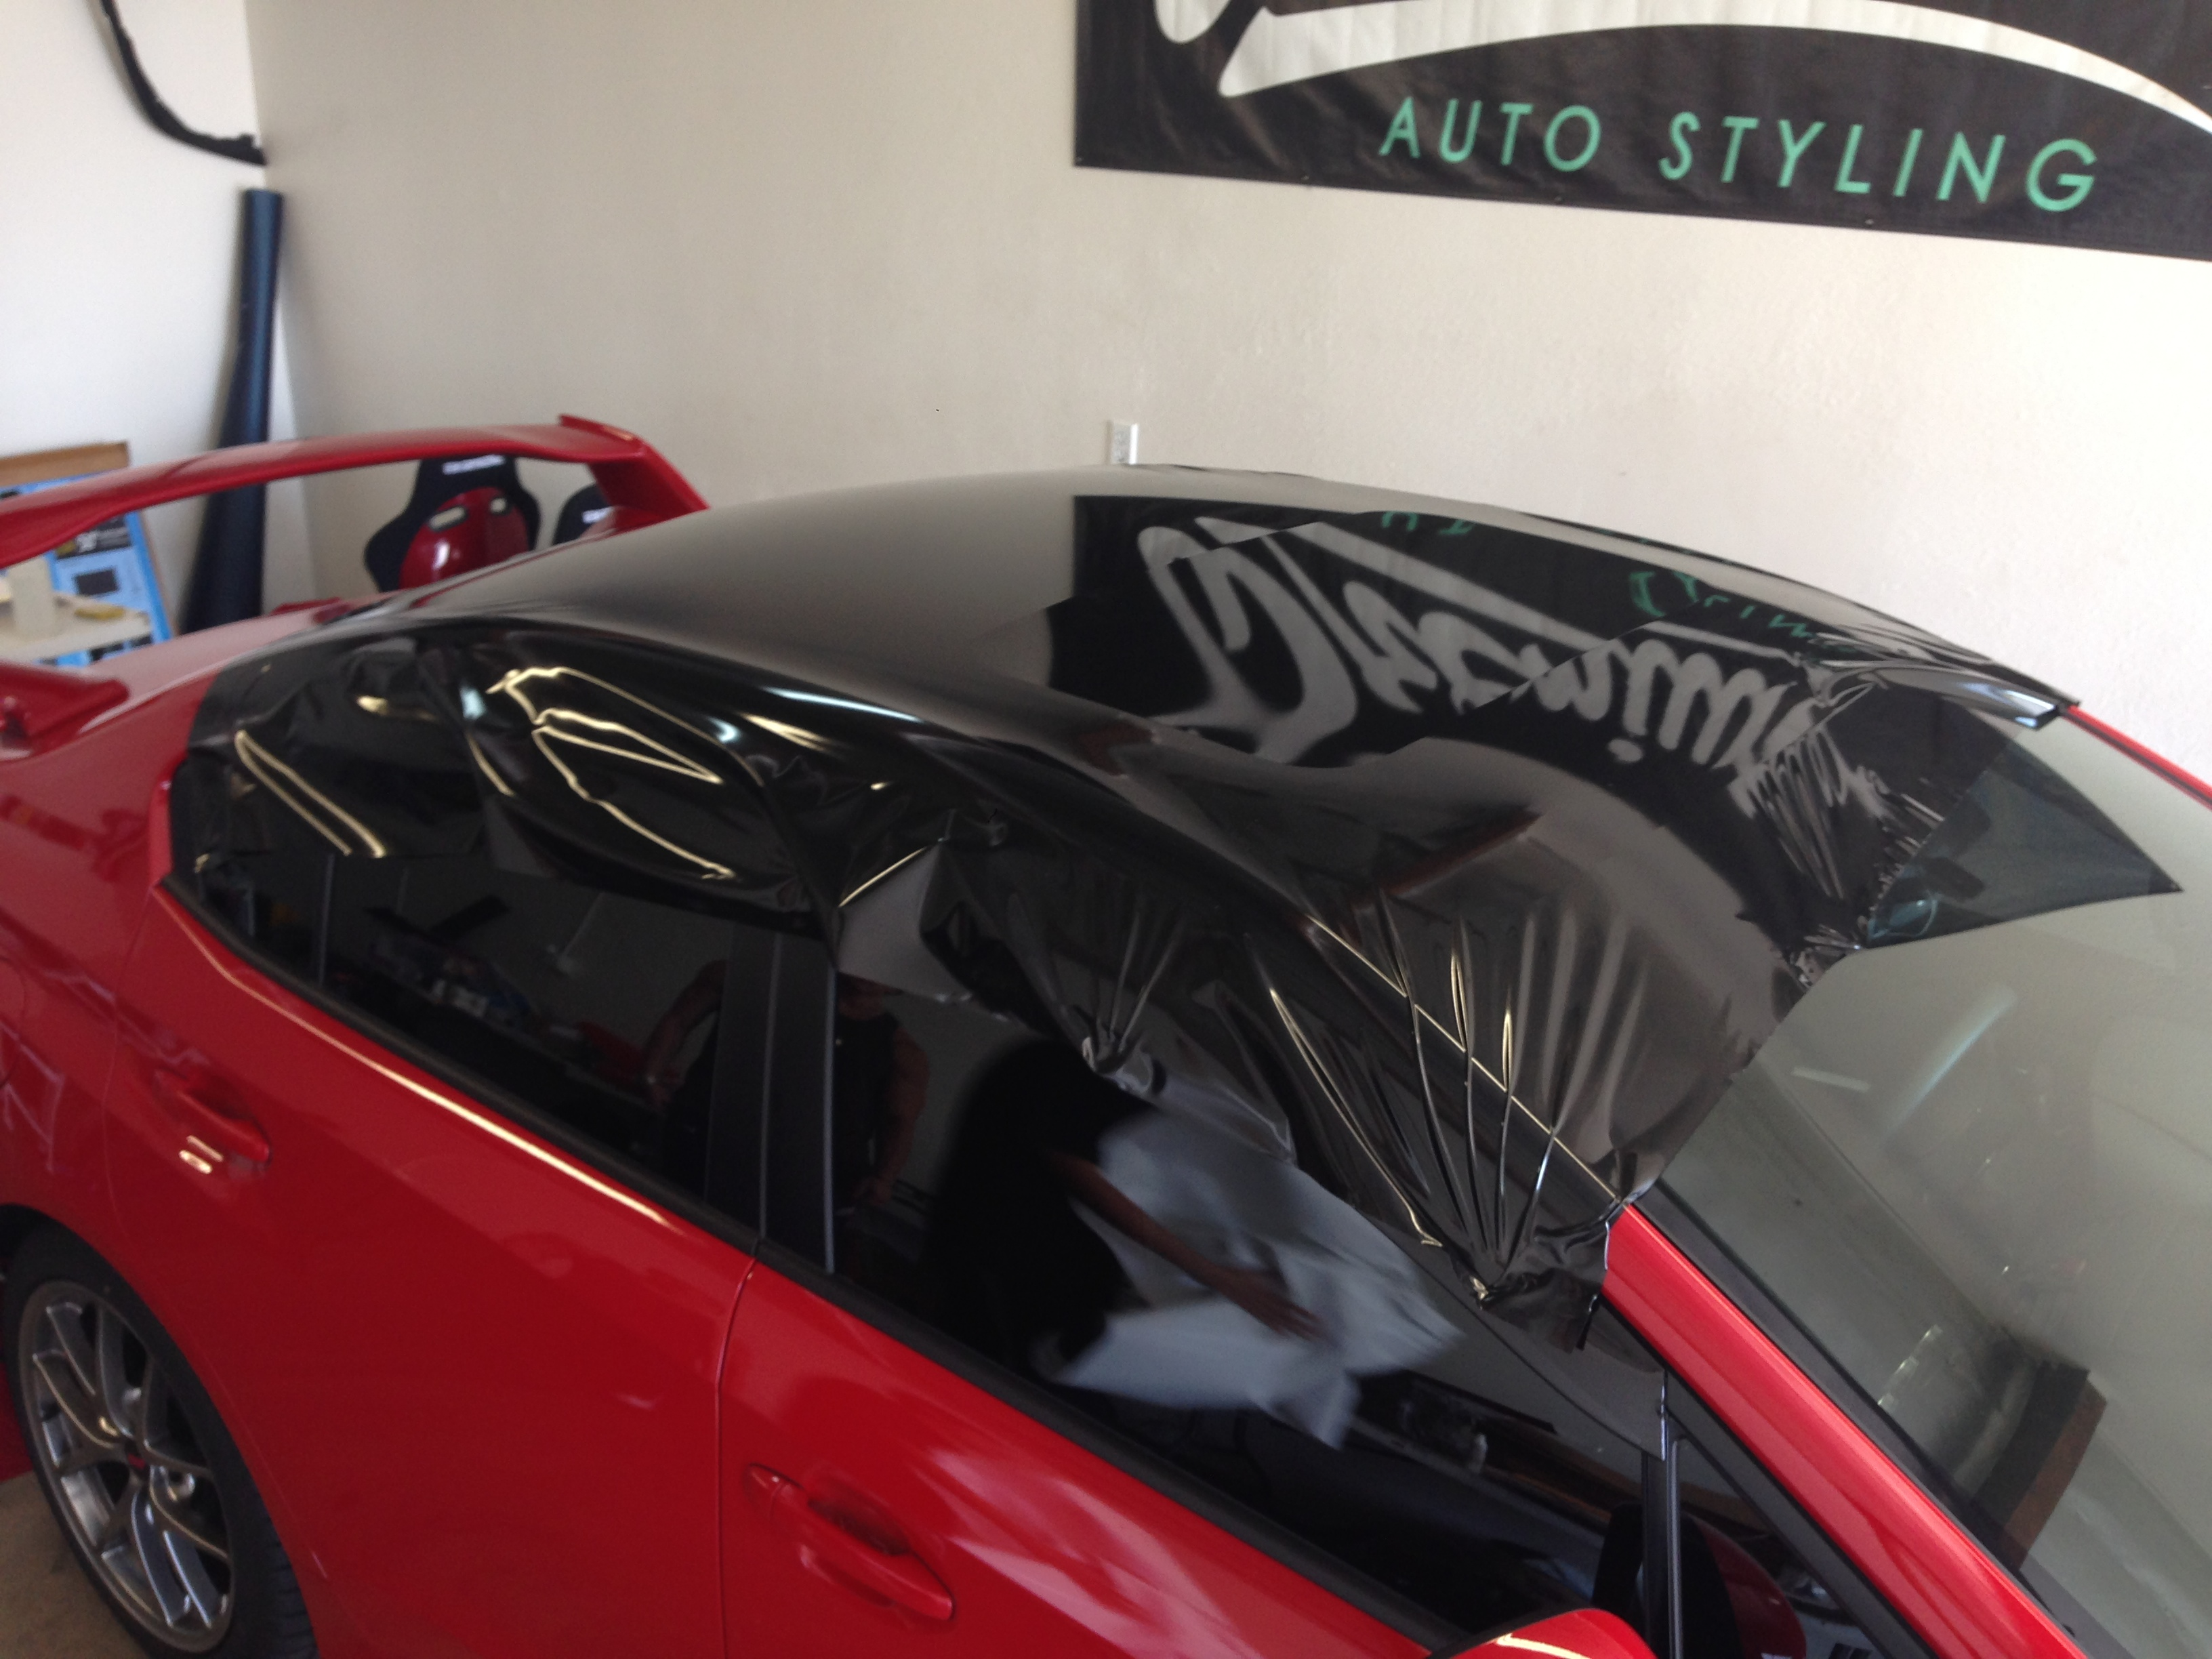 Antenna Fully Wrapped In One Sheet Of 3m Gloss Black Mettalic Vinyl: